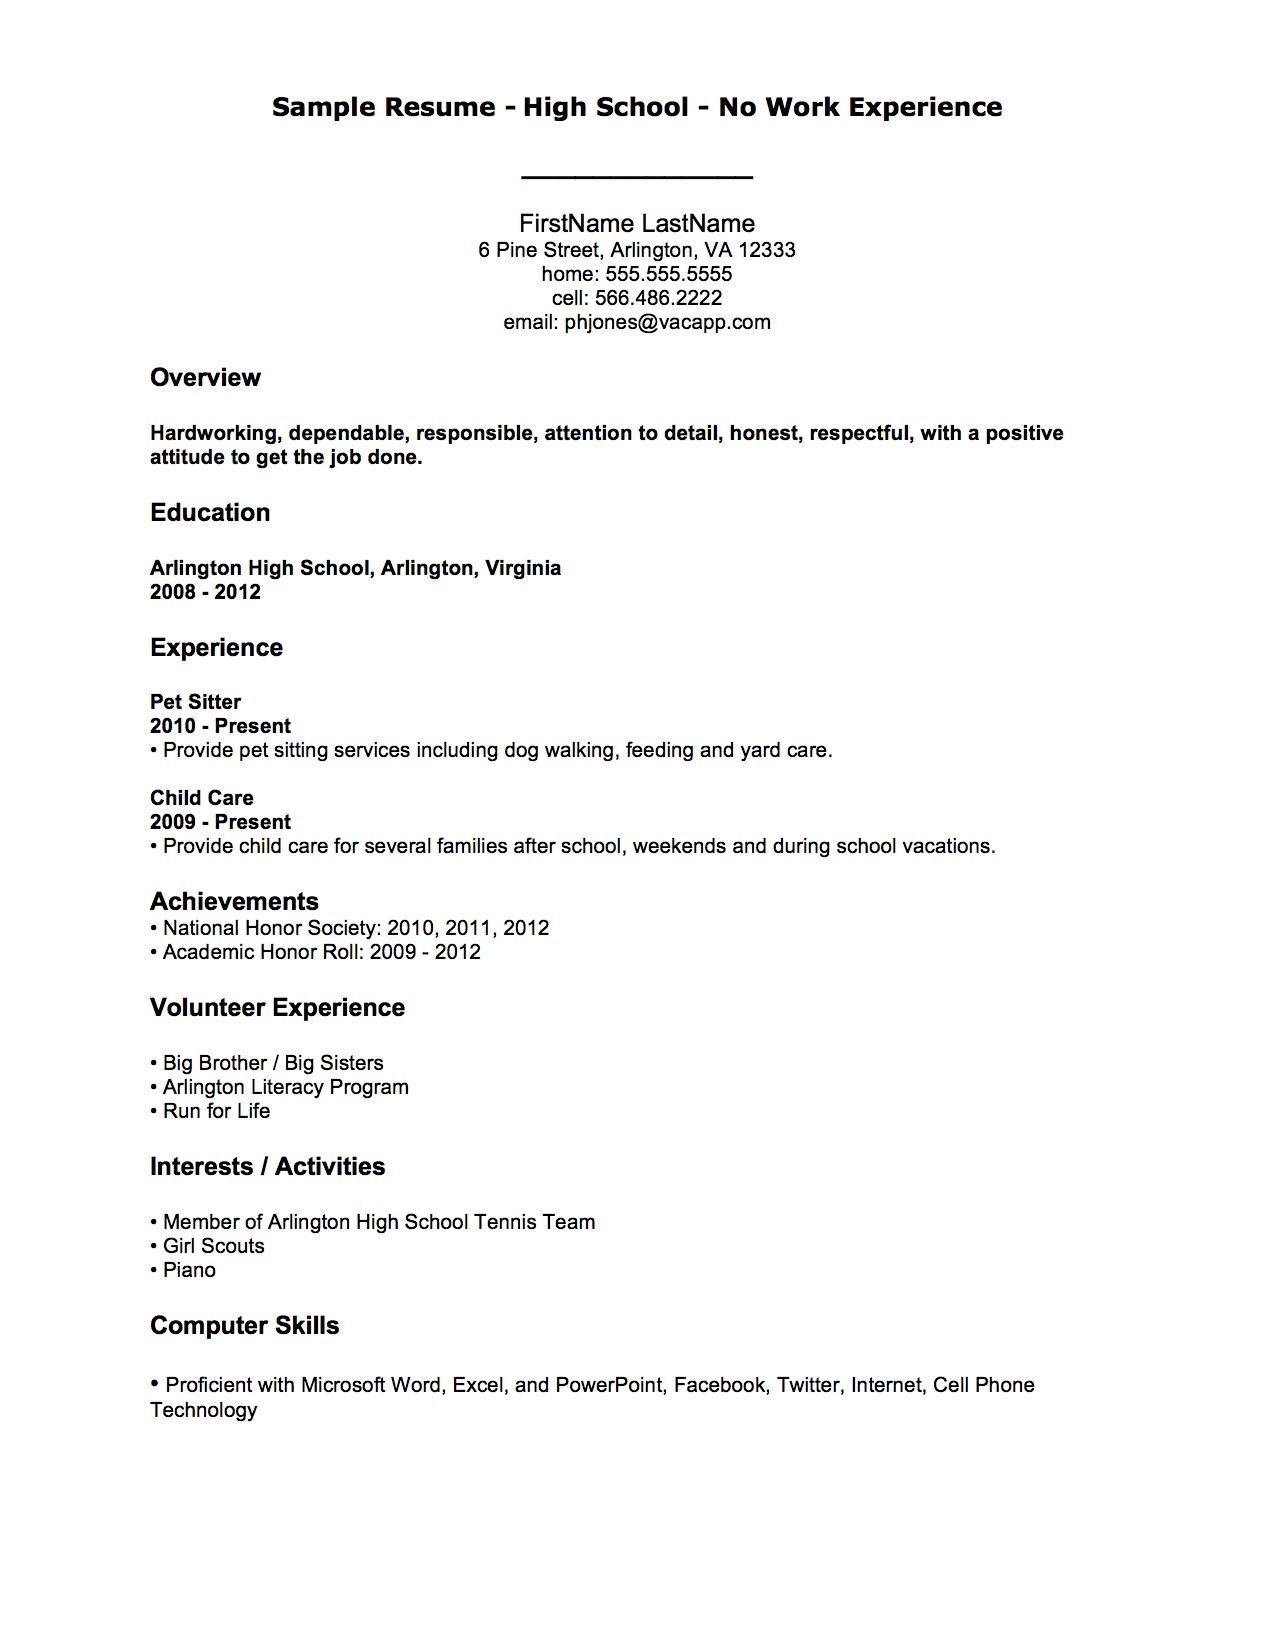 Resume Examples With No Job Experience 1 Sample